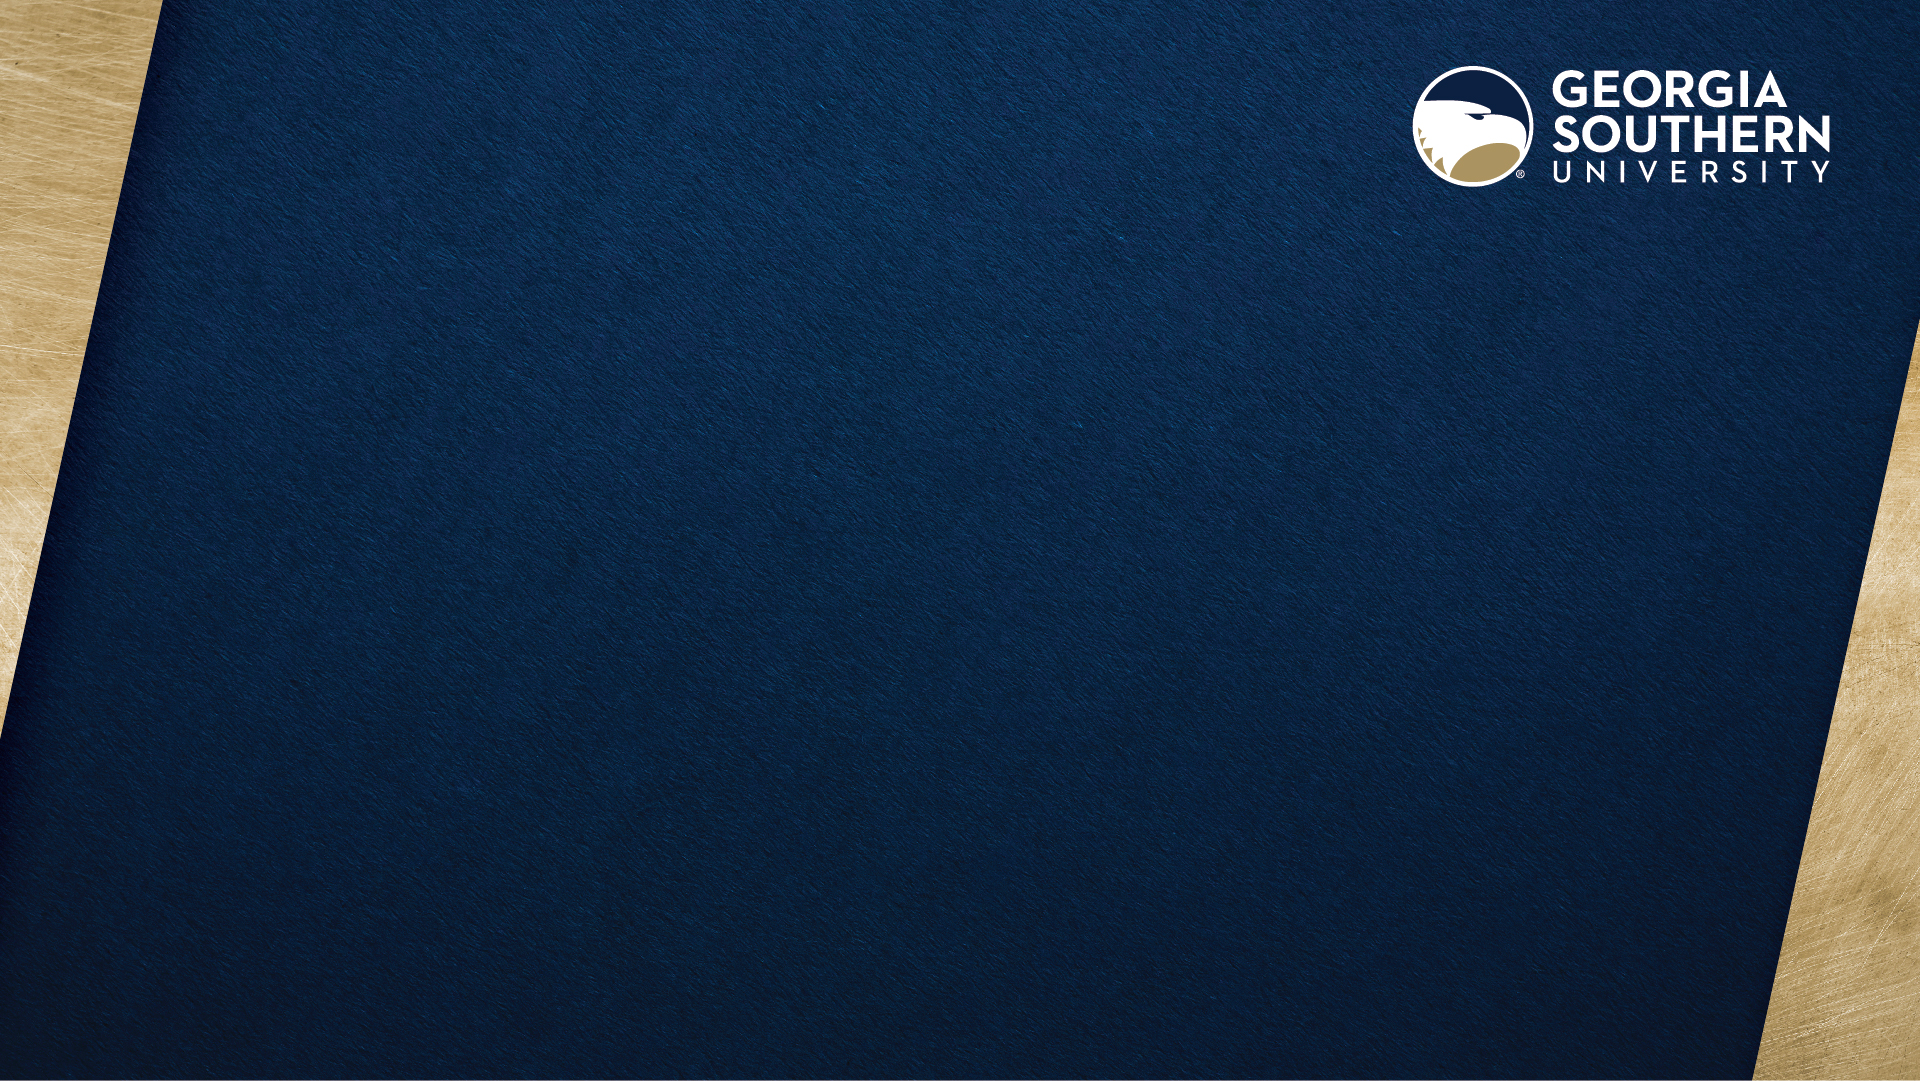 download a blue and gold Zoom background